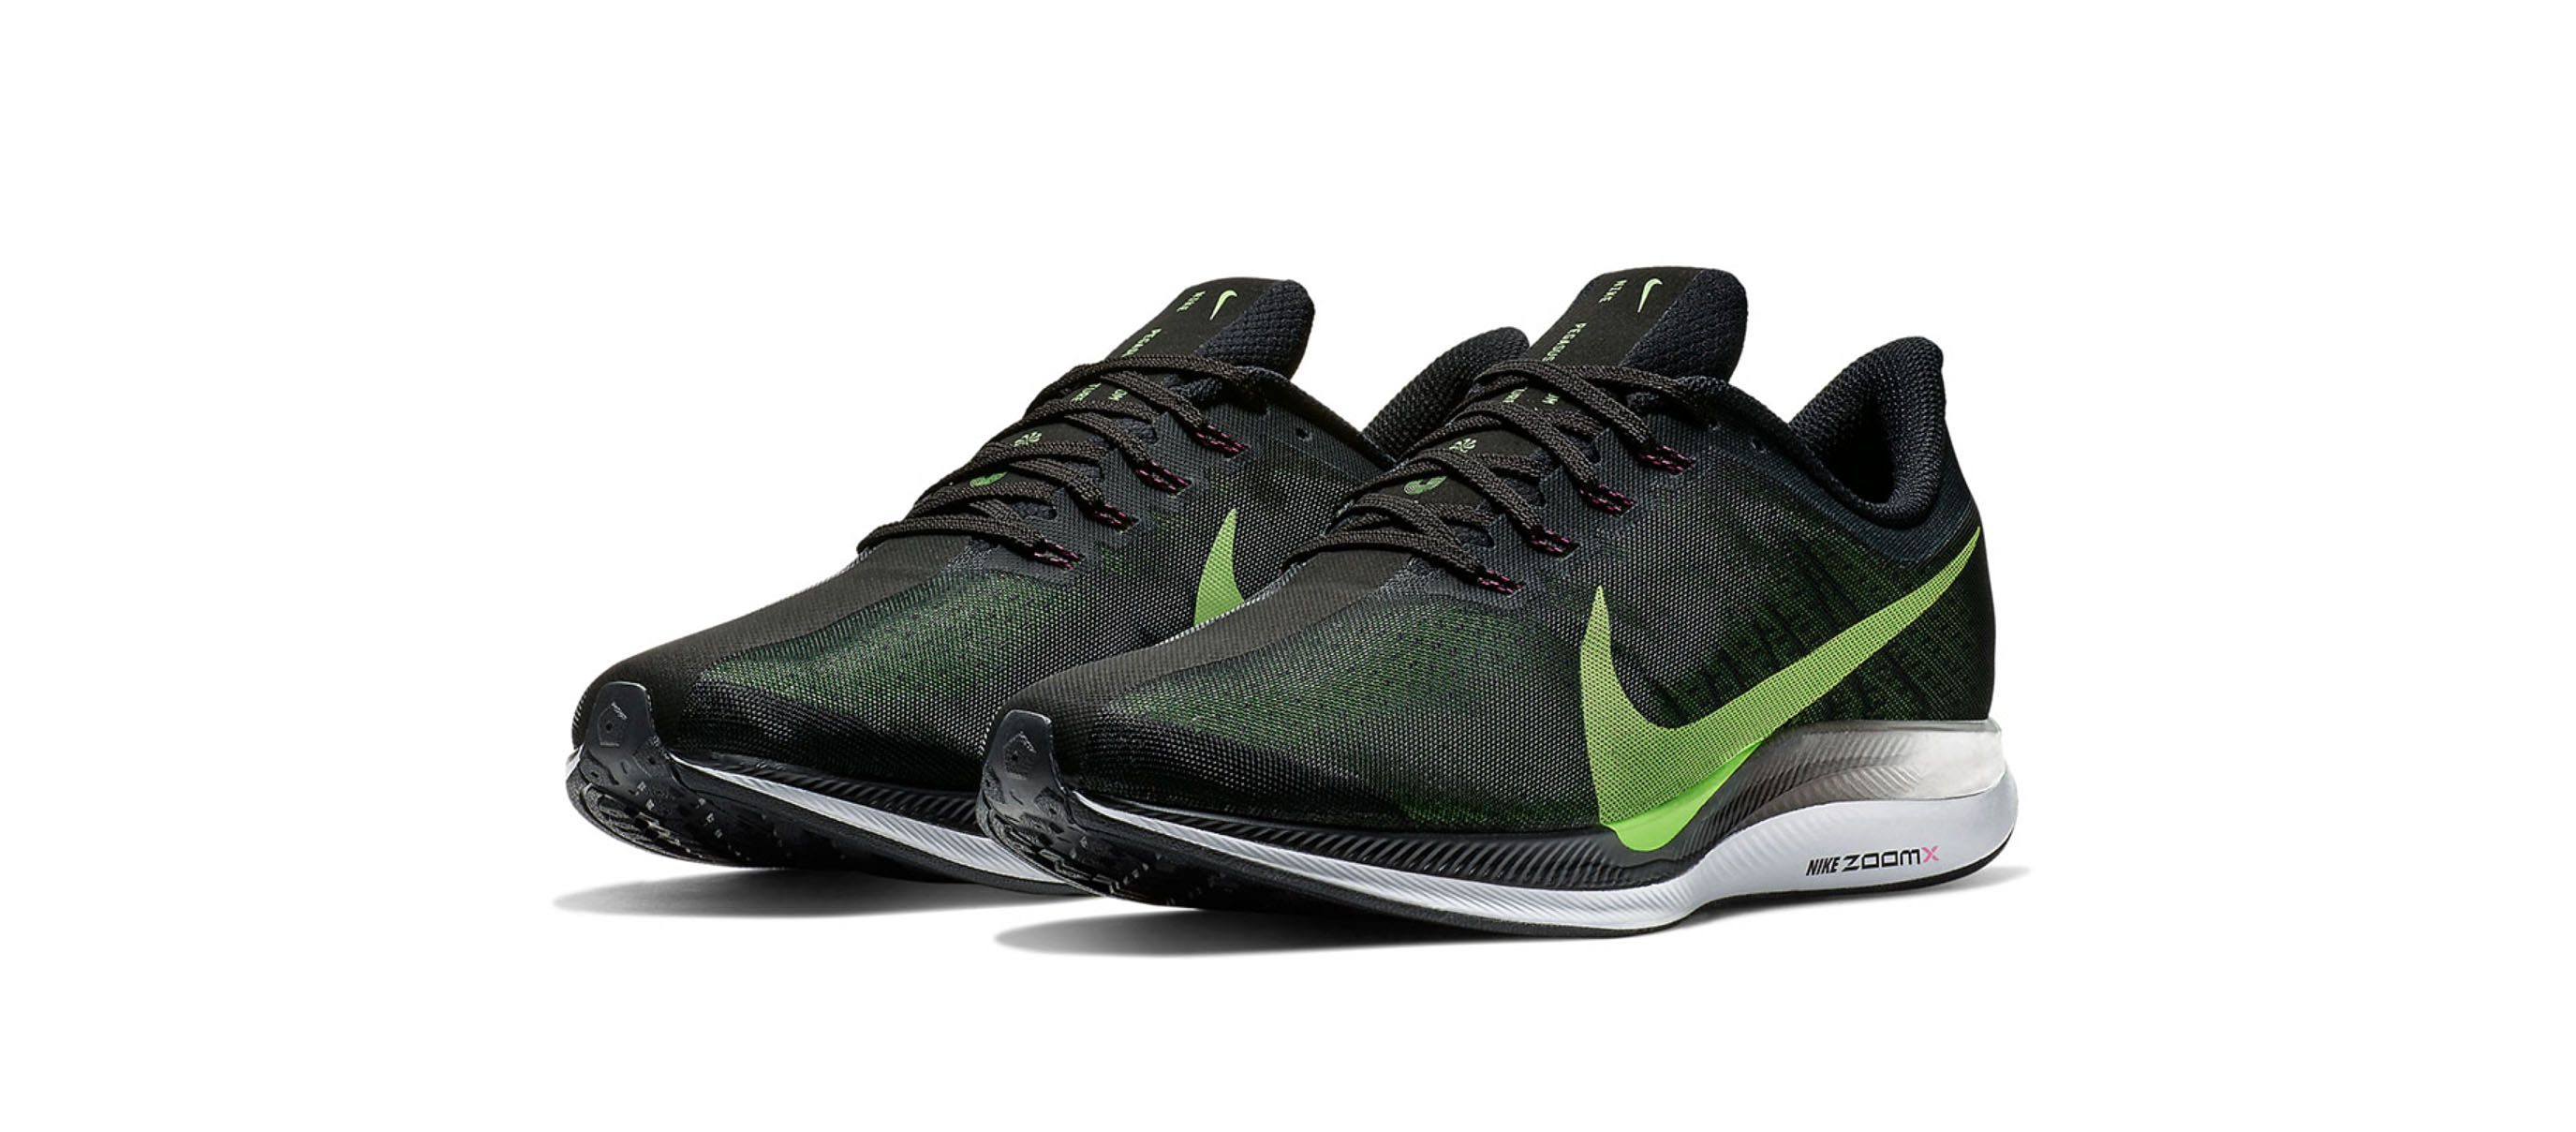 83603a5decab5 Nike Zoom Pegasus Turbo Lime Blast – New Color Release